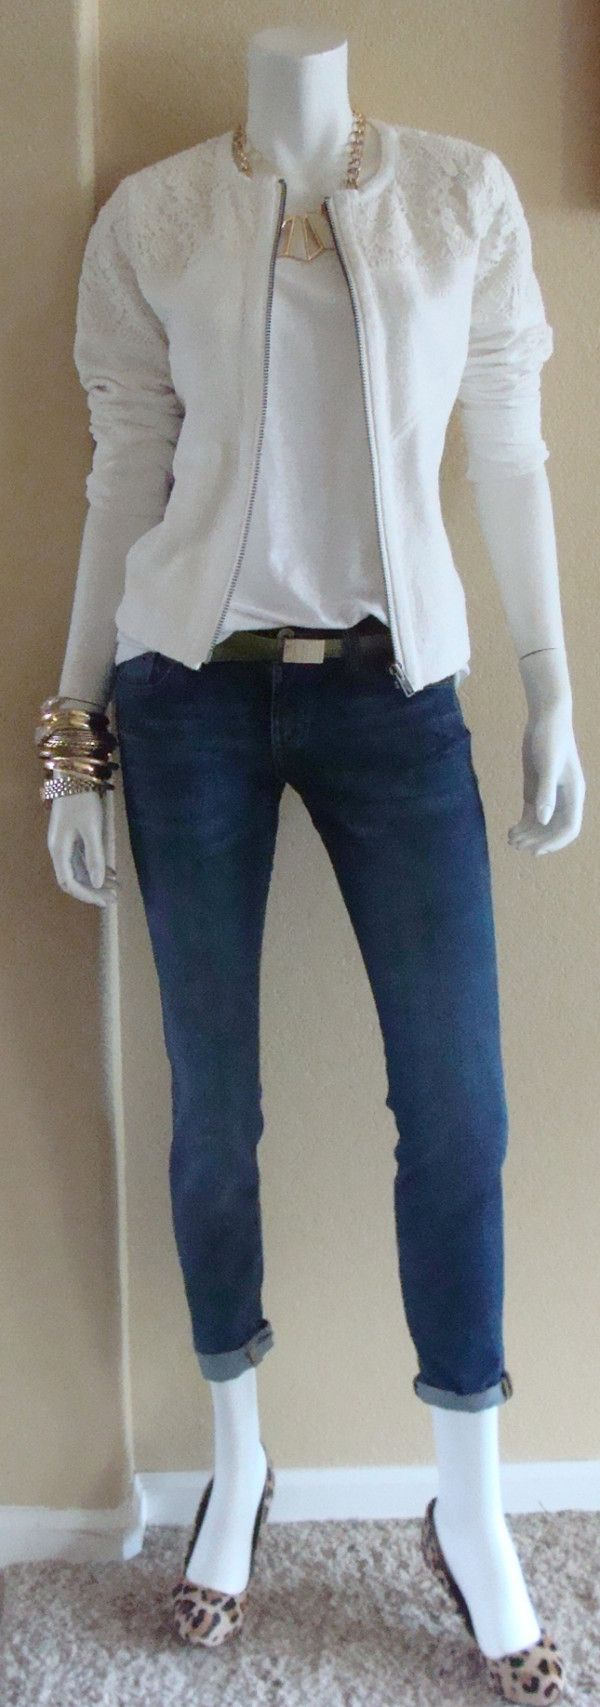 Daily Look: CAbi Spring '14 Ruby Jean, Linen Tank, Occasion Jacket and Boa Belt.  I'll have one of each, please!